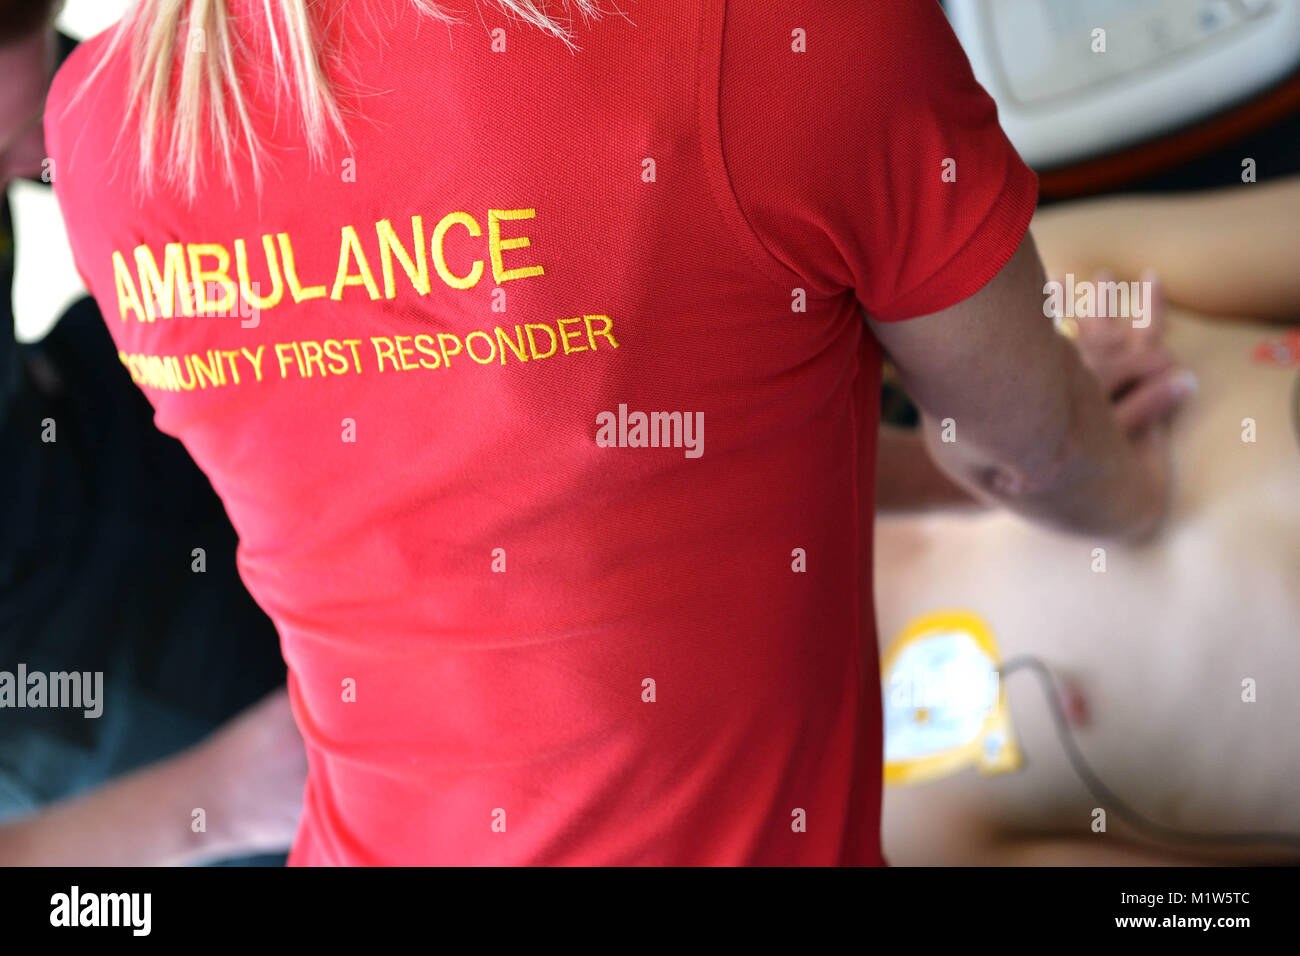 Community First Responder in action. South East Coast Ambulance Service. - Stock Image